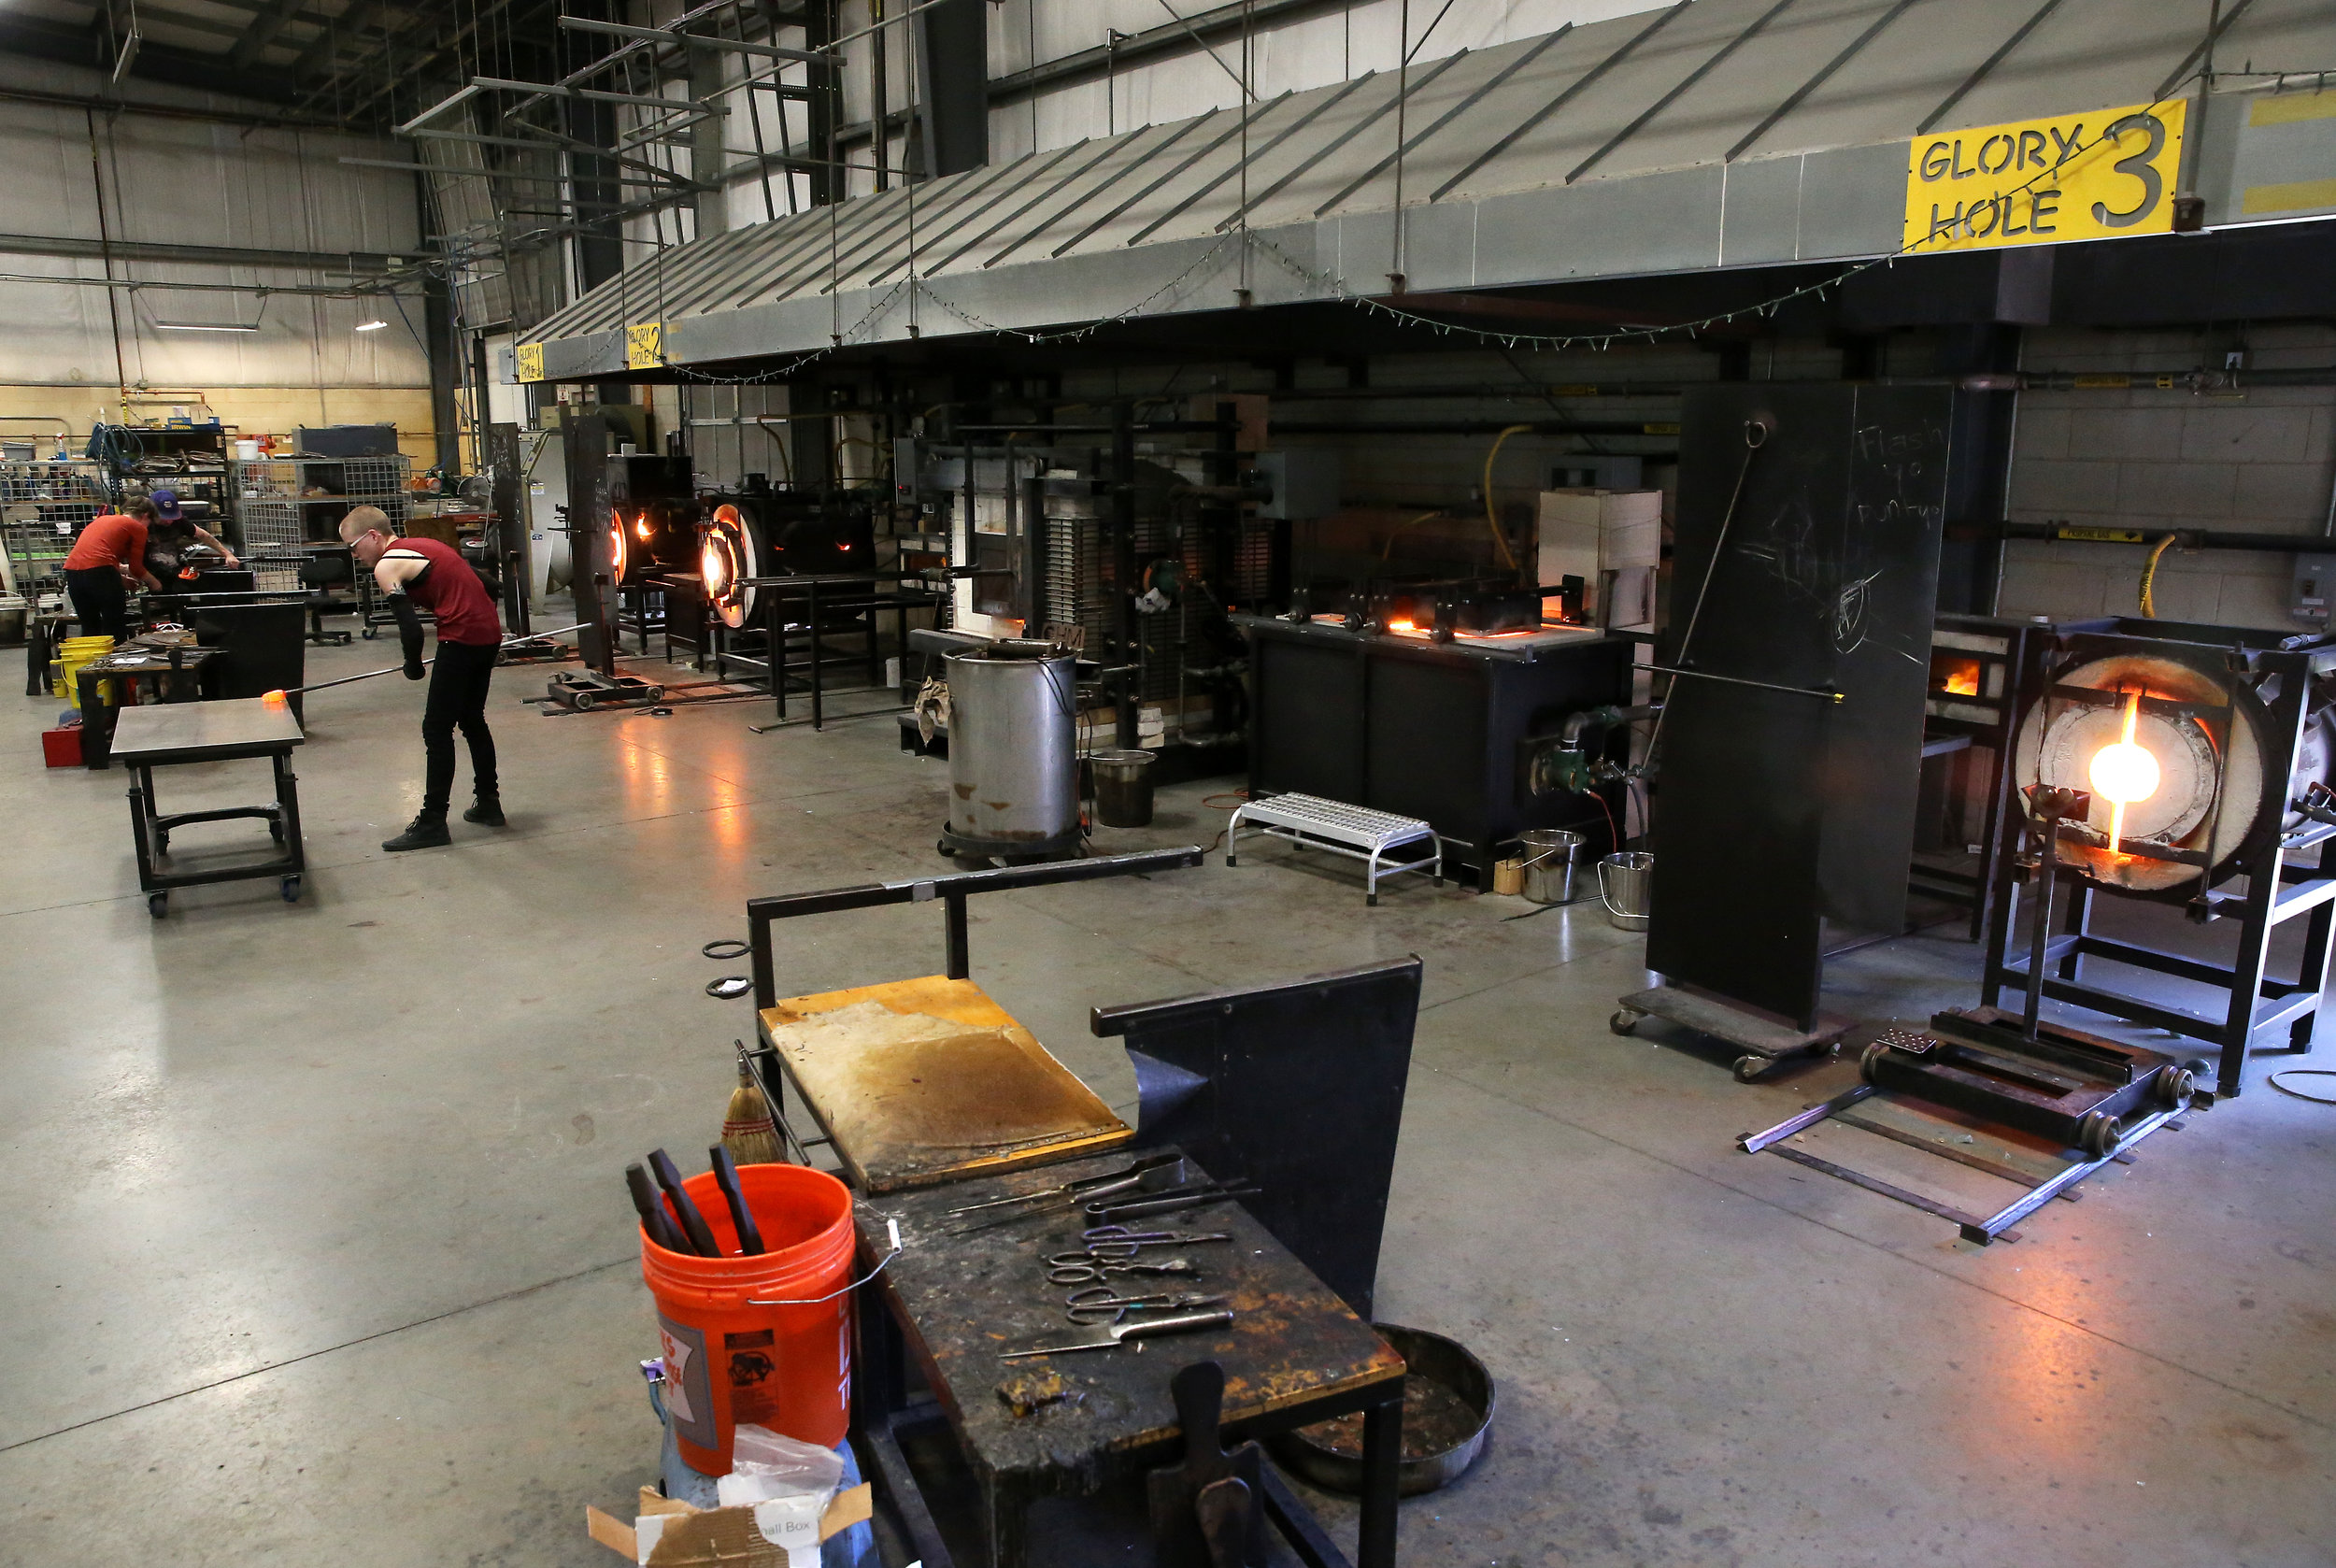 The hot shop is just one of four glass studio areas housed in the Paul J. Stankard Studio Lab; the studio also includes a flame shop, kiln shop, and cold shop covering all areas of studio glass.